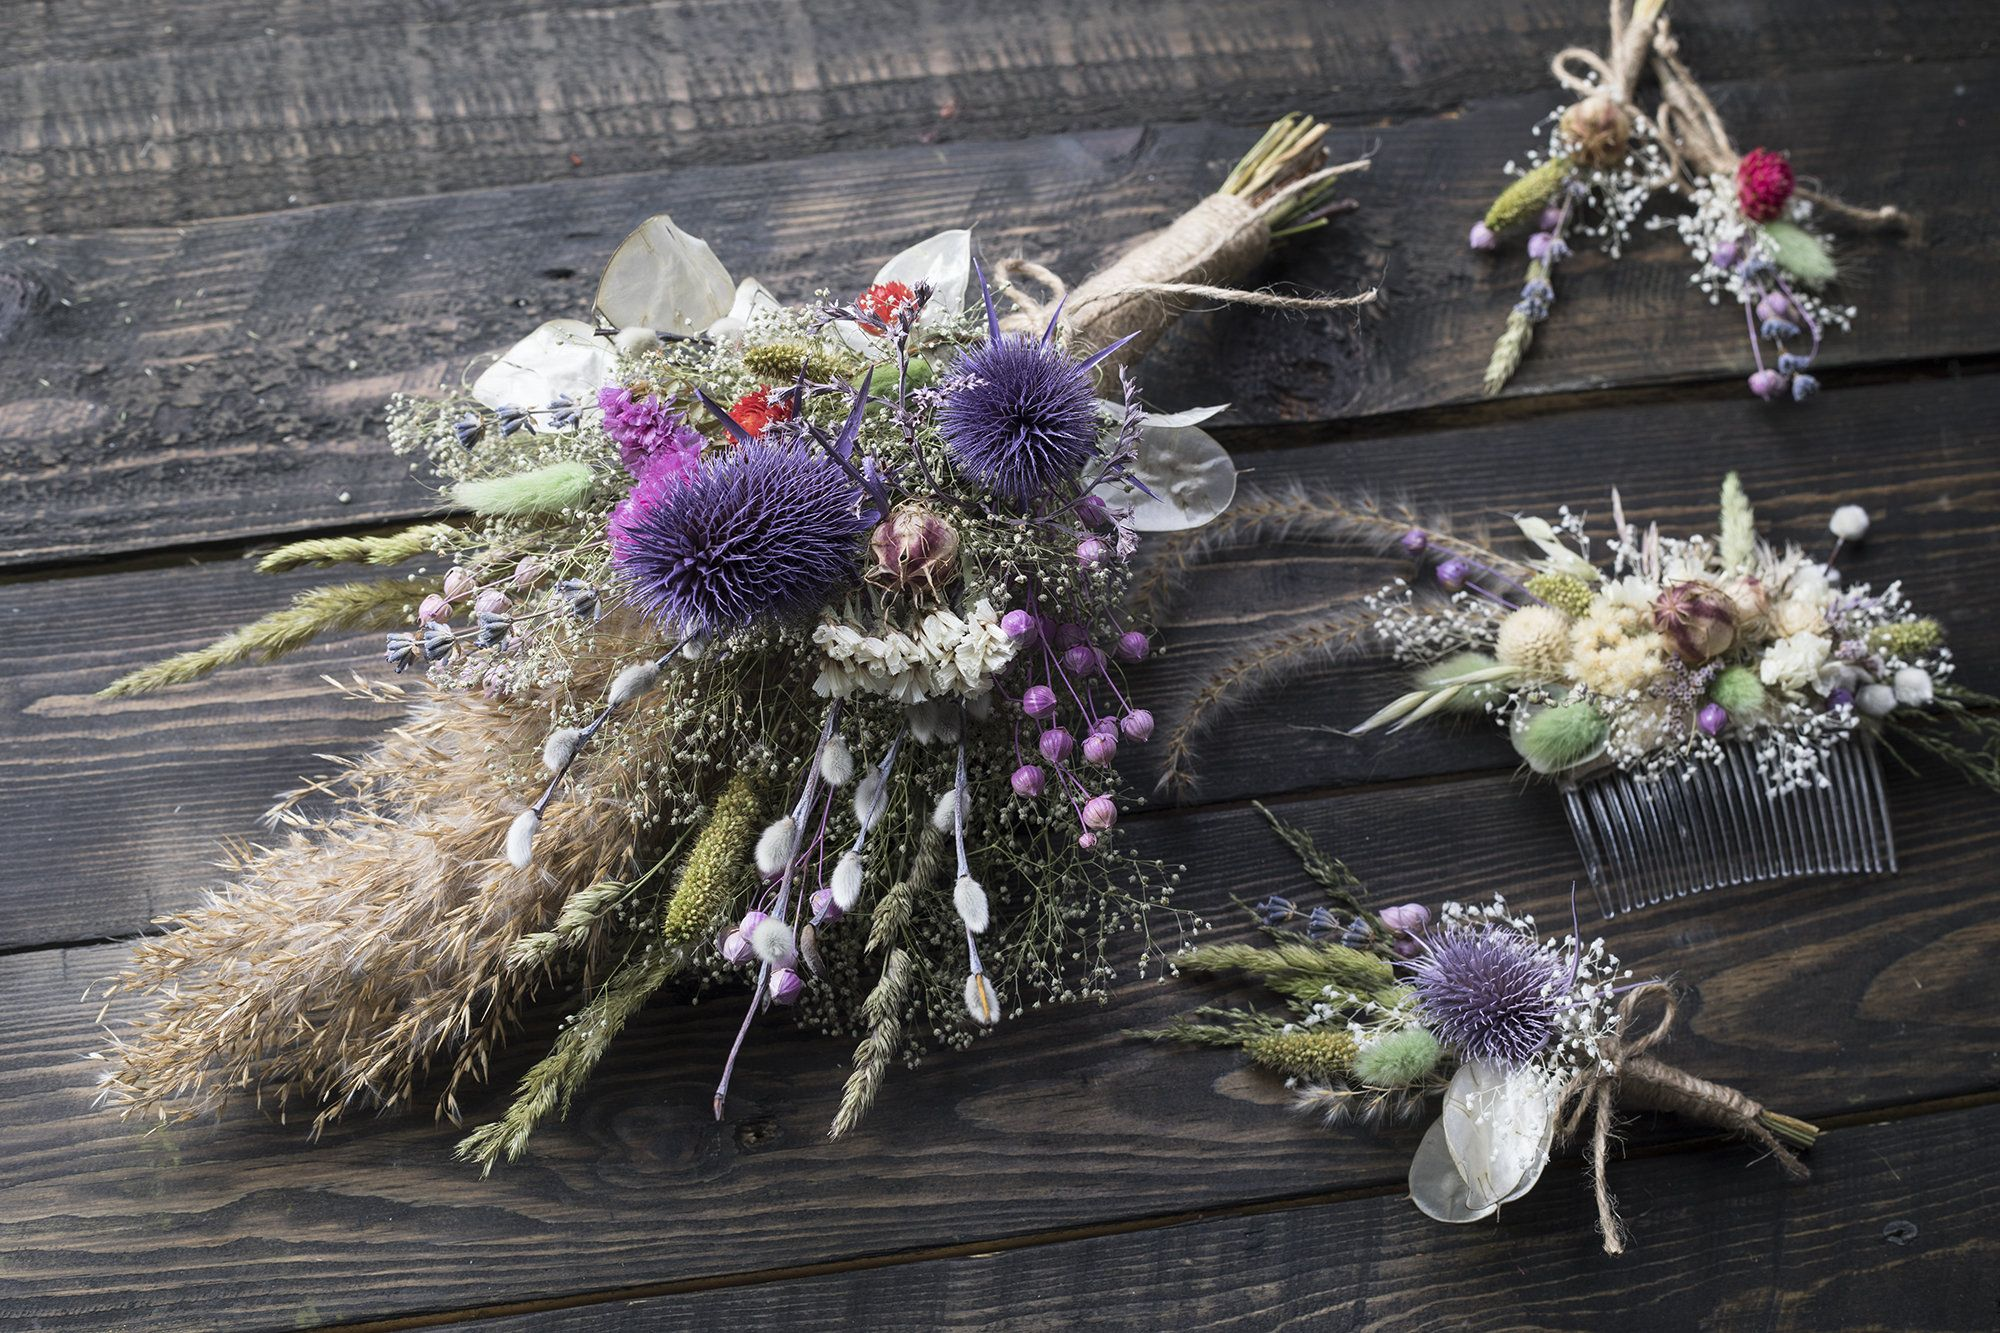 Dried Flower Thistle Bouquet Lavender Pampass Grass Pyssy Willow Flowers Dried Flower Arrangement Rustic Home Decor Wedding Set In 2020 Dried Flower Arrangements Thistle Bouquet Flower Arrangements